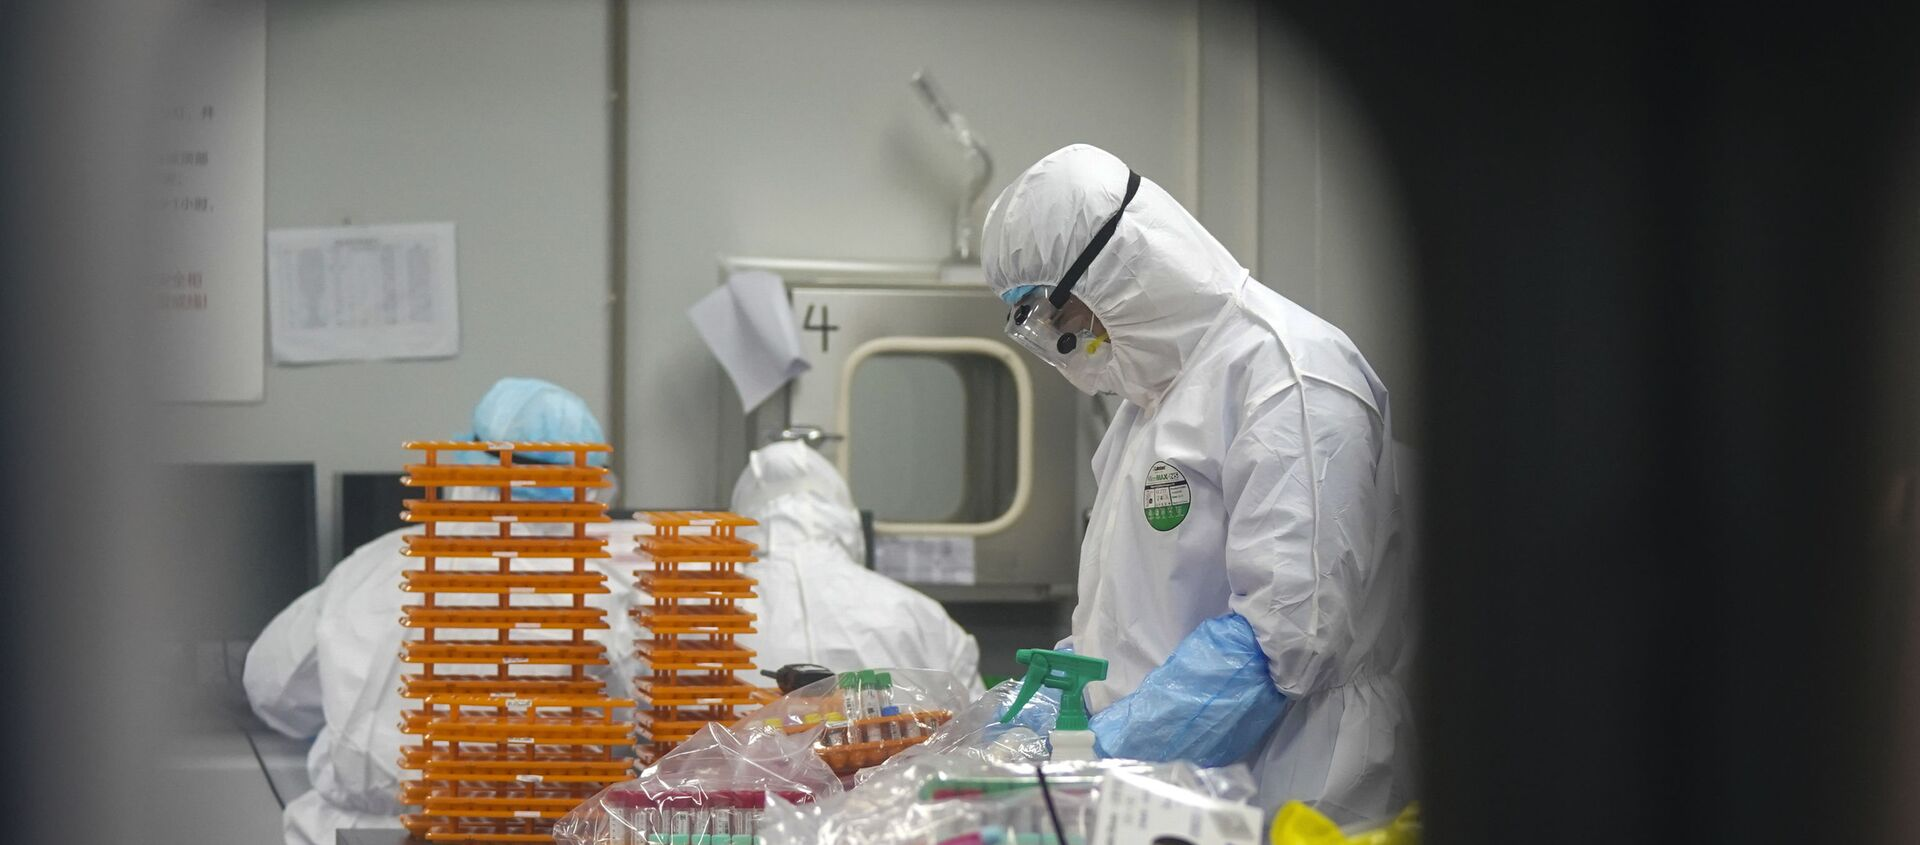 This Saturday, Feb. 22, 2020, photo released by Xinhua News Agency, shows medical workers in protective suits at a coronavirus detection lab in Wuhan in central China's Hubei Province. The fresh national figures for the disease that emerged in China in December came as the number of viral infections soared mostly in and around the southeastern city of Daegu, where they were linked to a local church and a hospital. - Sputnik International, 1920, 06.08.2021